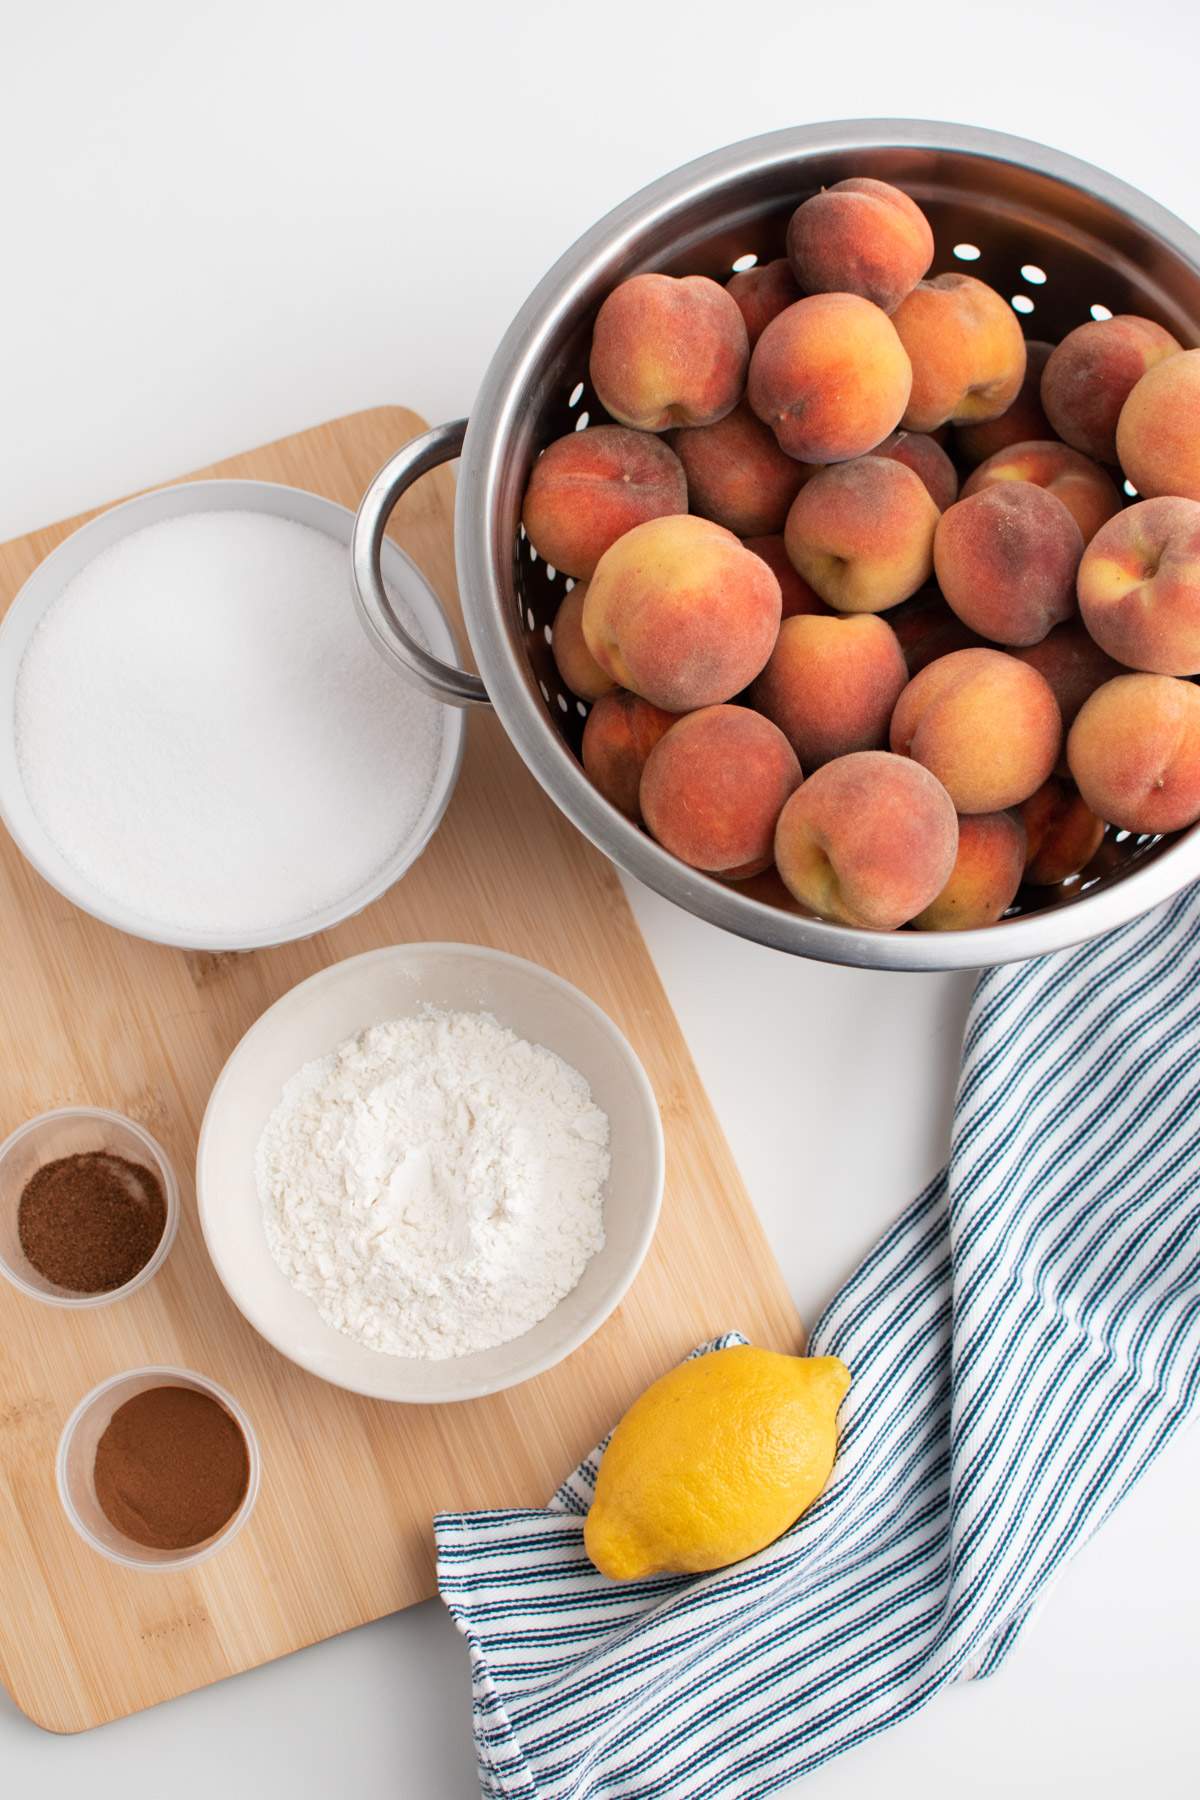 Various peach pie filling ingredients like peaches, sugar, flour, and spices on cutting board and white table.